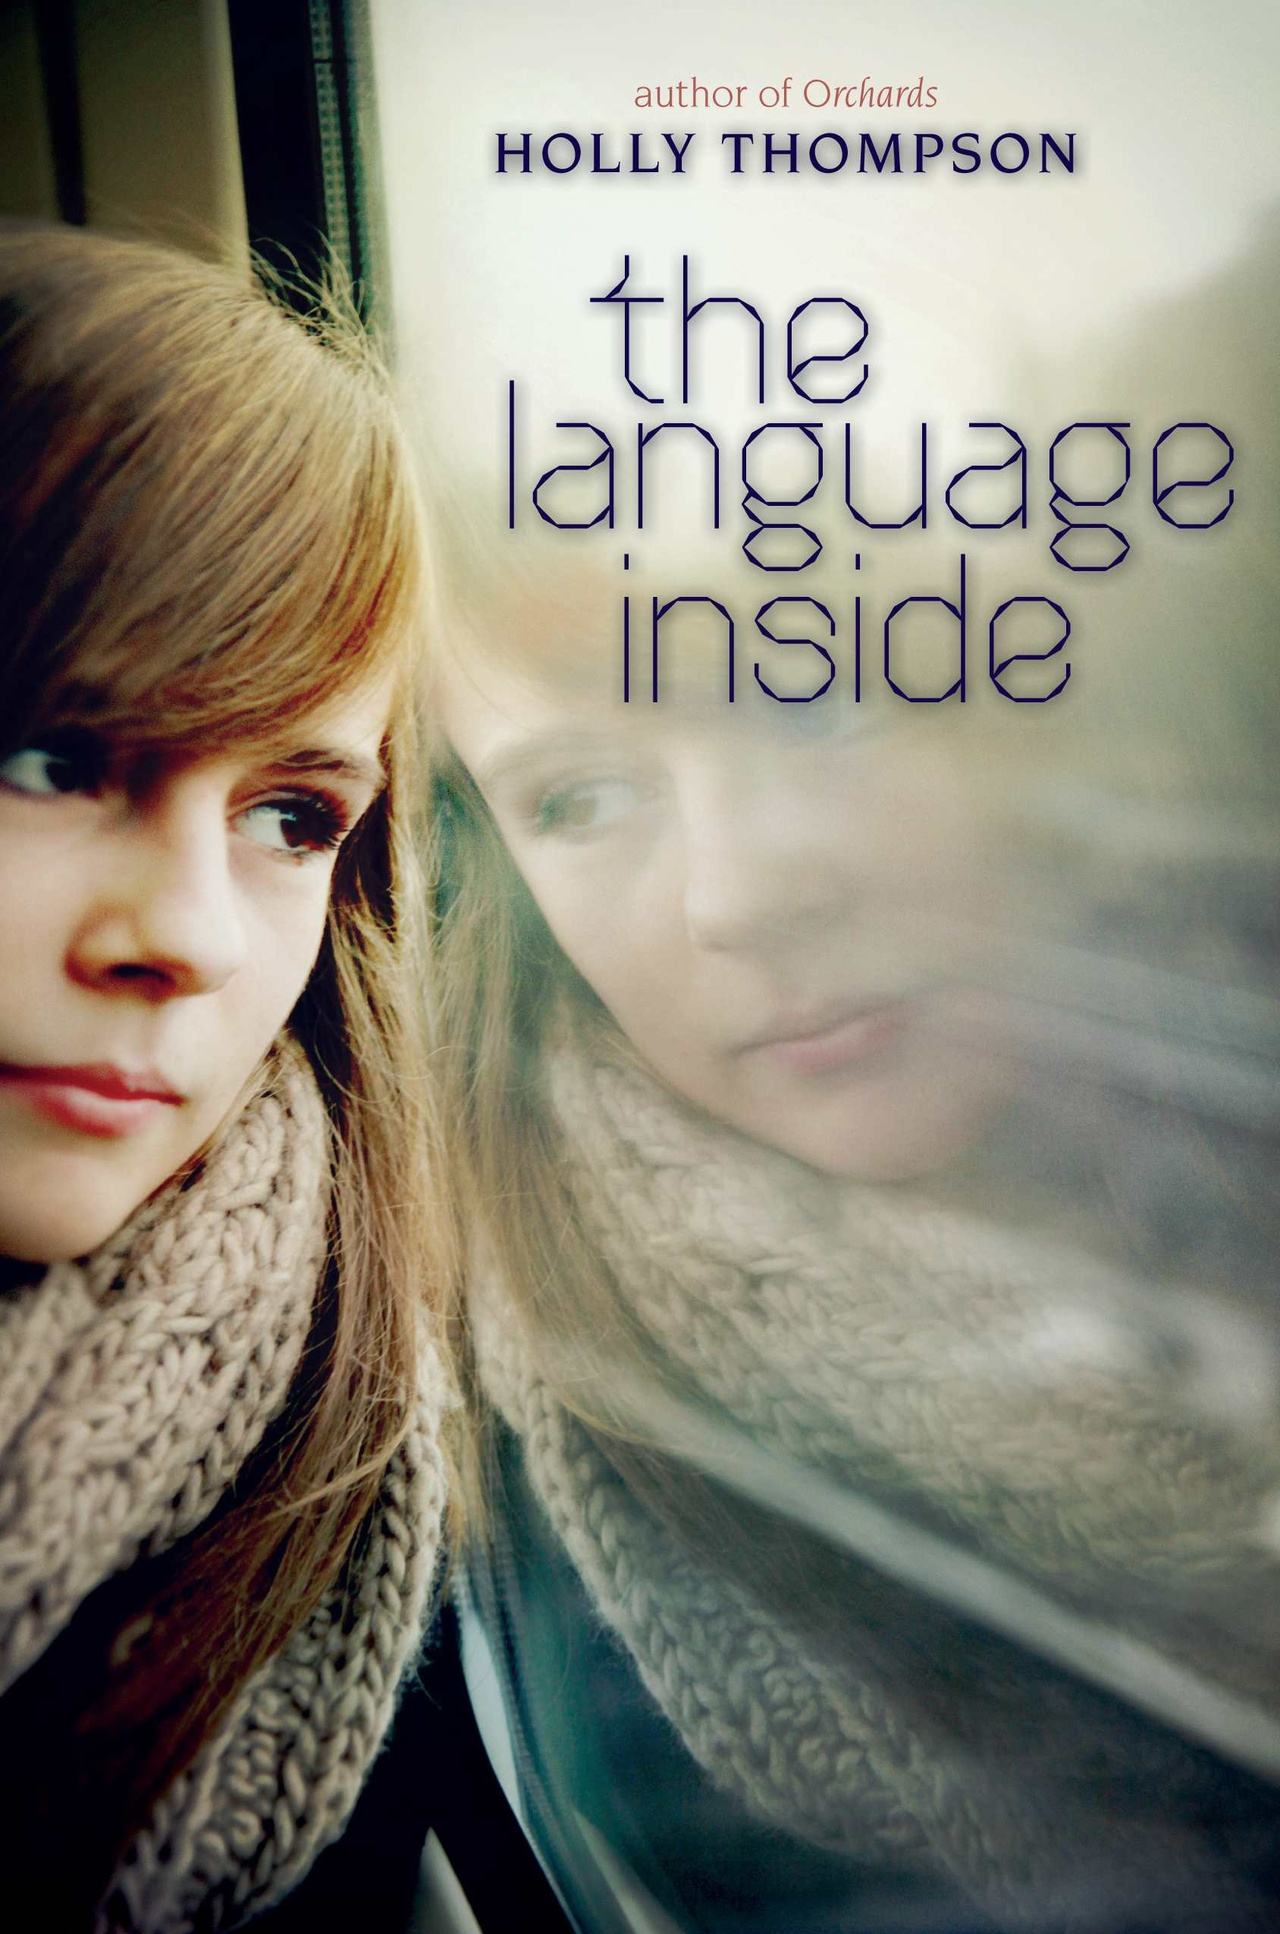 Hollythompson thelanguageinside book cover 2